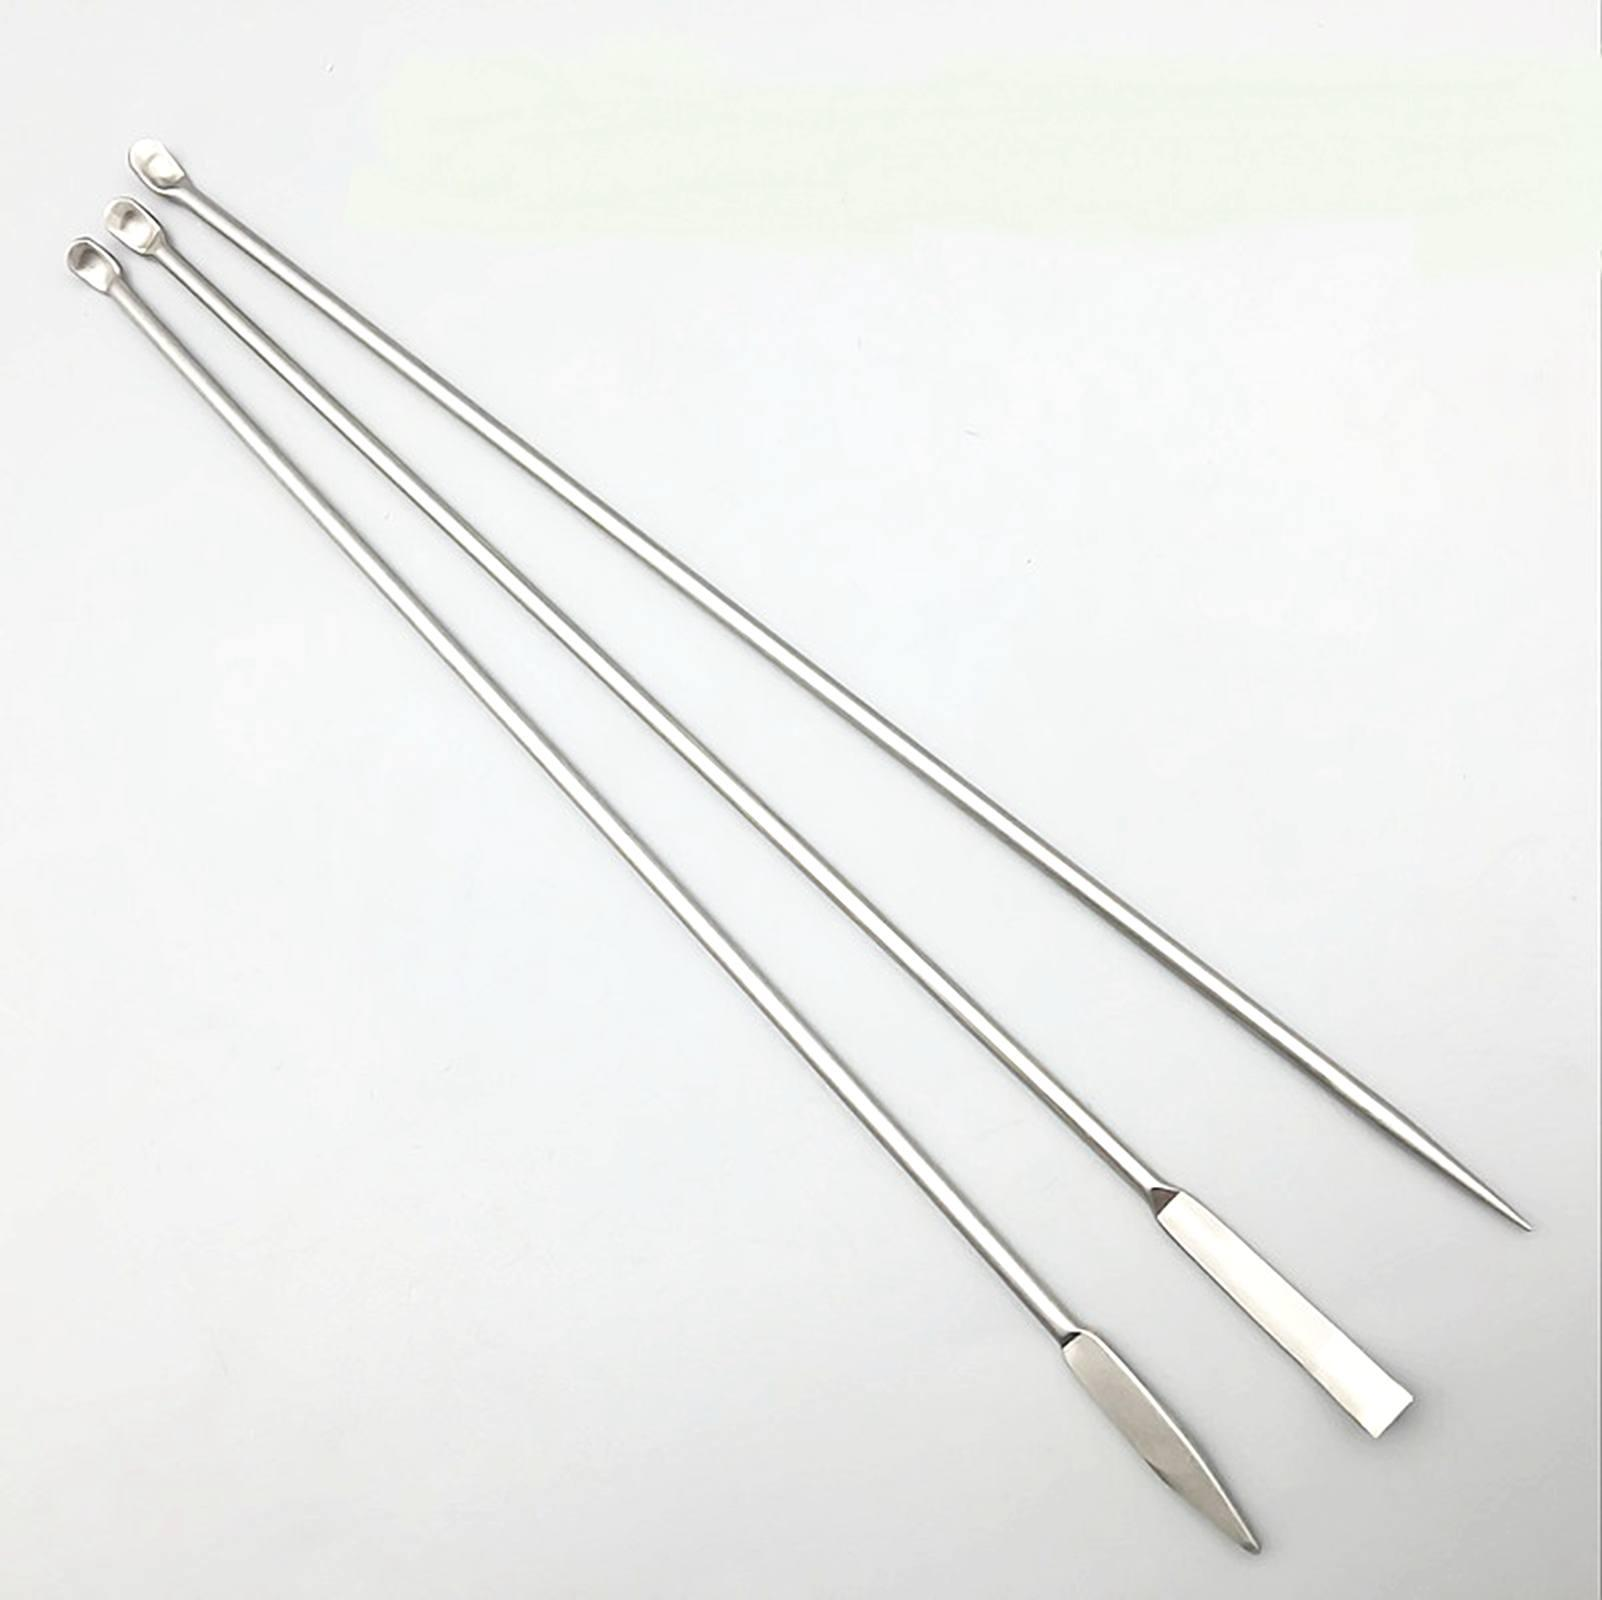 3pcs 22cm Stainless Steel Microscale Medicinal Spoon Experiment Pharmacy Lab Use